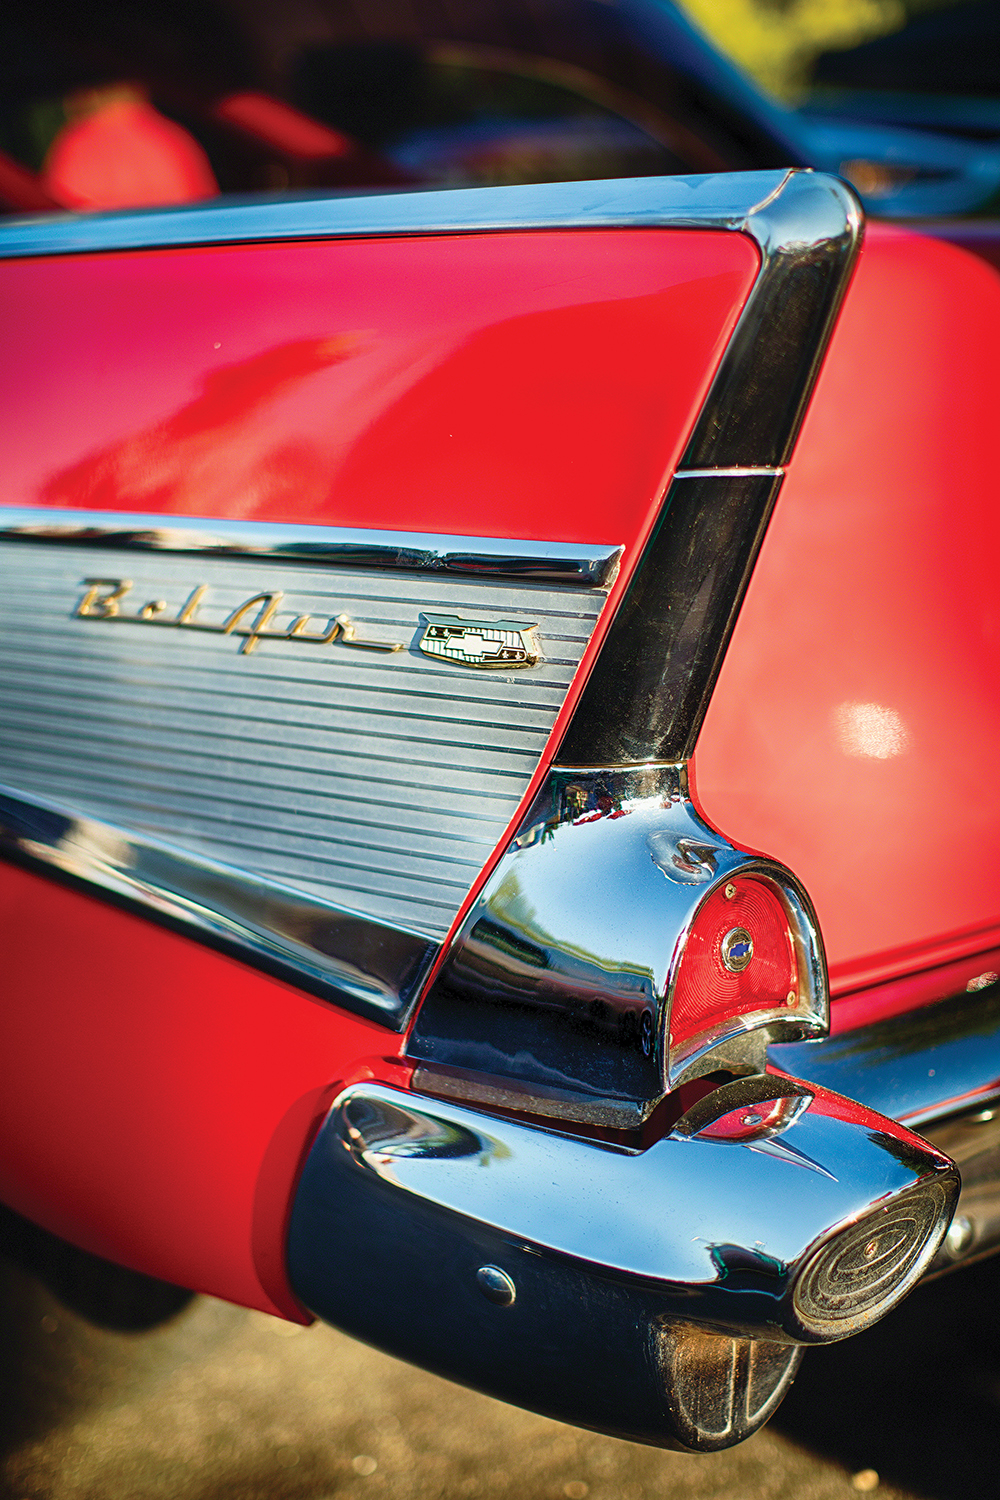 Photo of the rear end tail fin of a red Chevy Bel Air